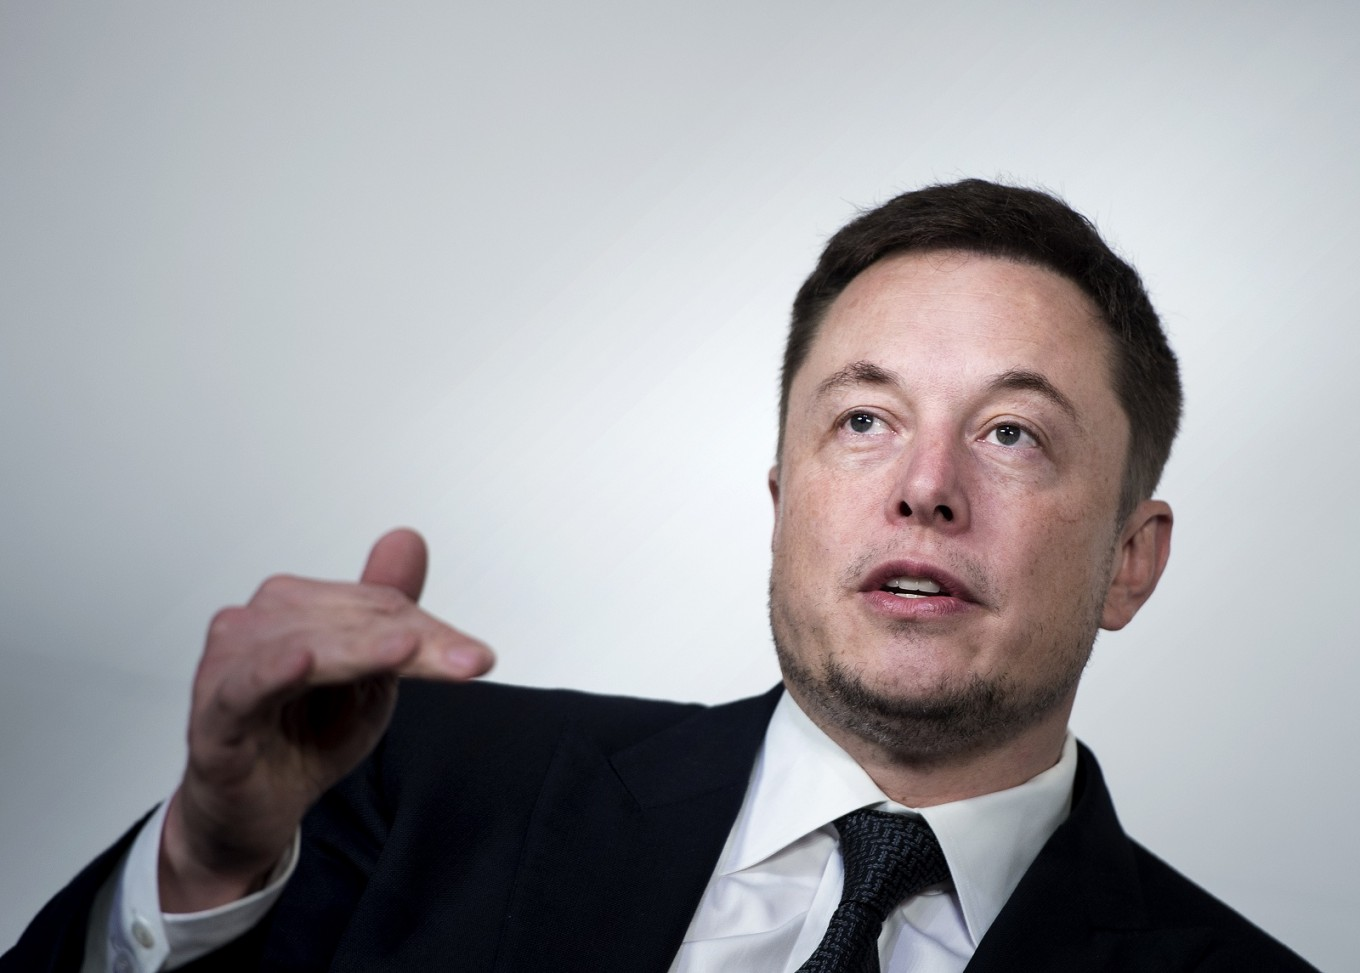 Elon Musk, visionary Tesla and SpaceX founder